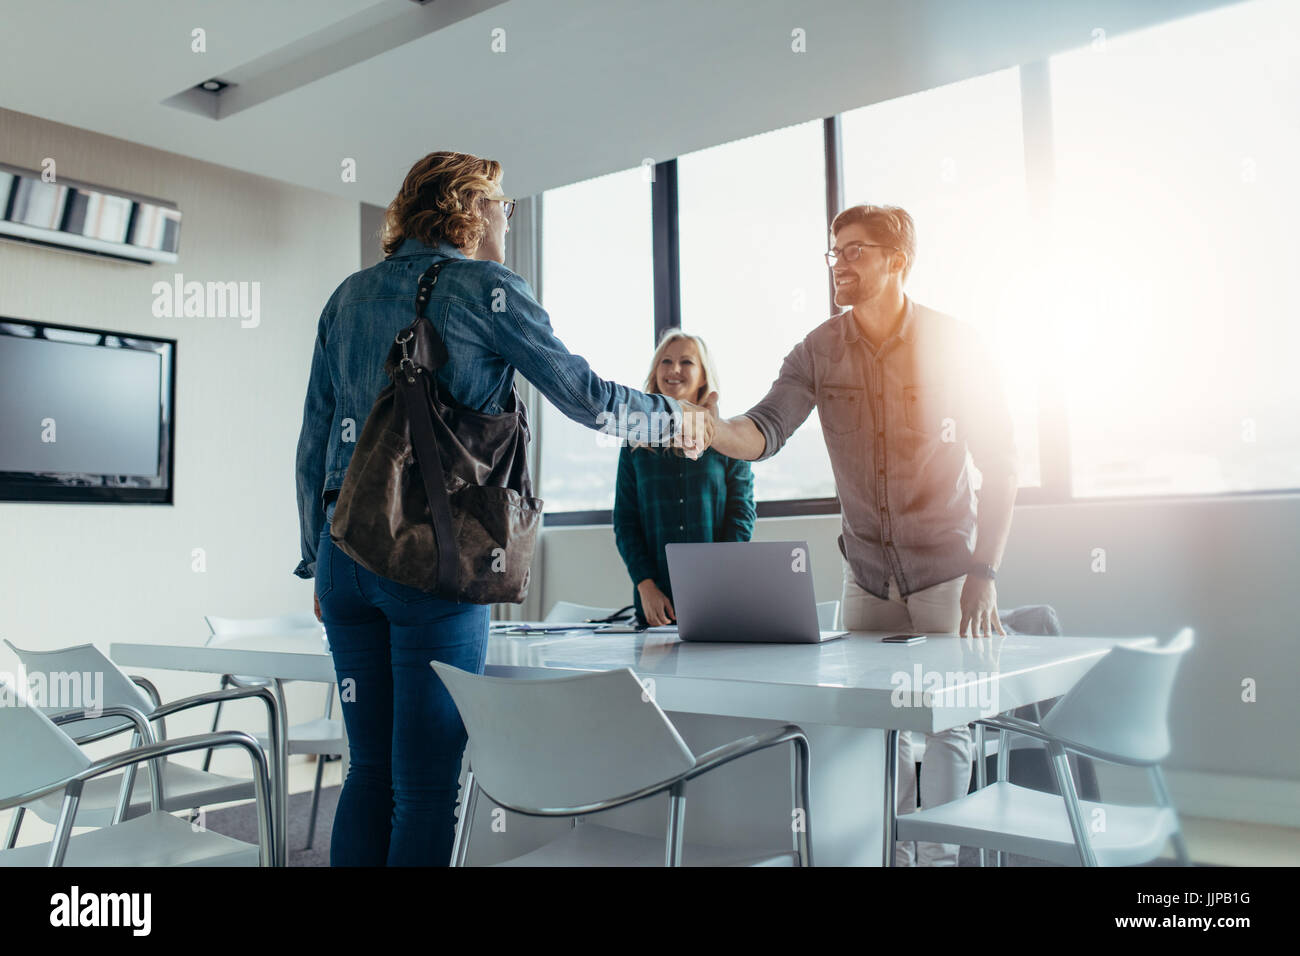 Business people finishing up a meeting. Man shaking hands with female client after successful deal. - Stock Image